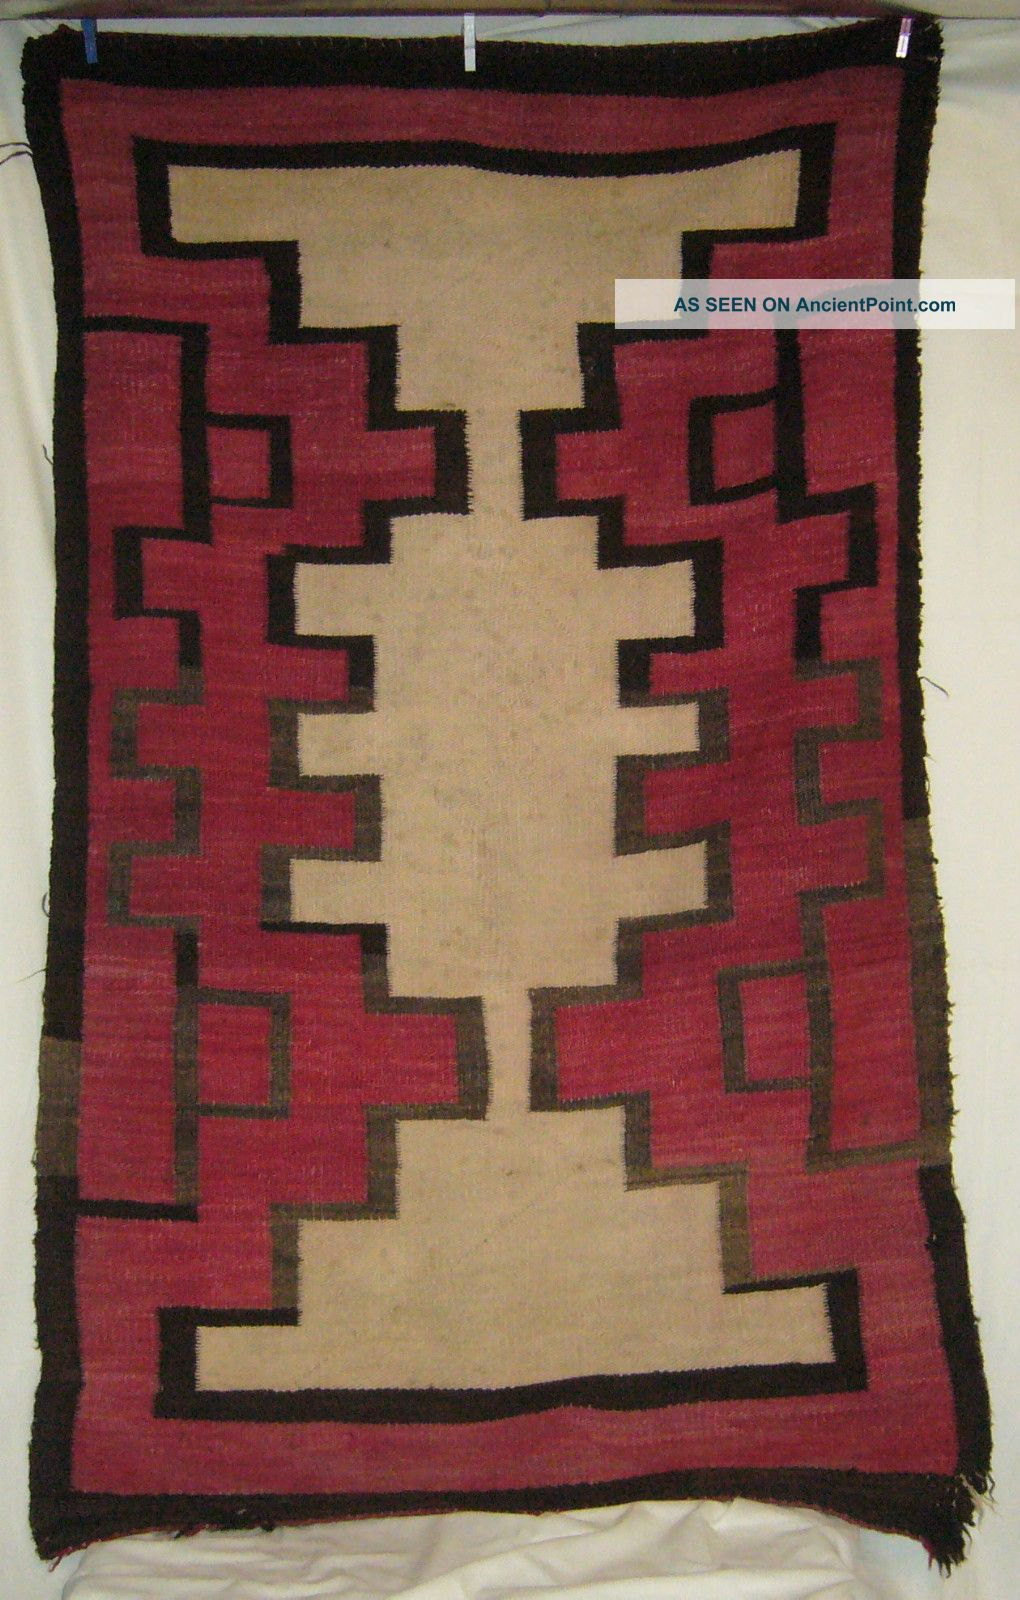 Antique C1885 - 1910 Navajo Red Black Brown & Neutral Tone Geometric Weaving Rug Native American photo